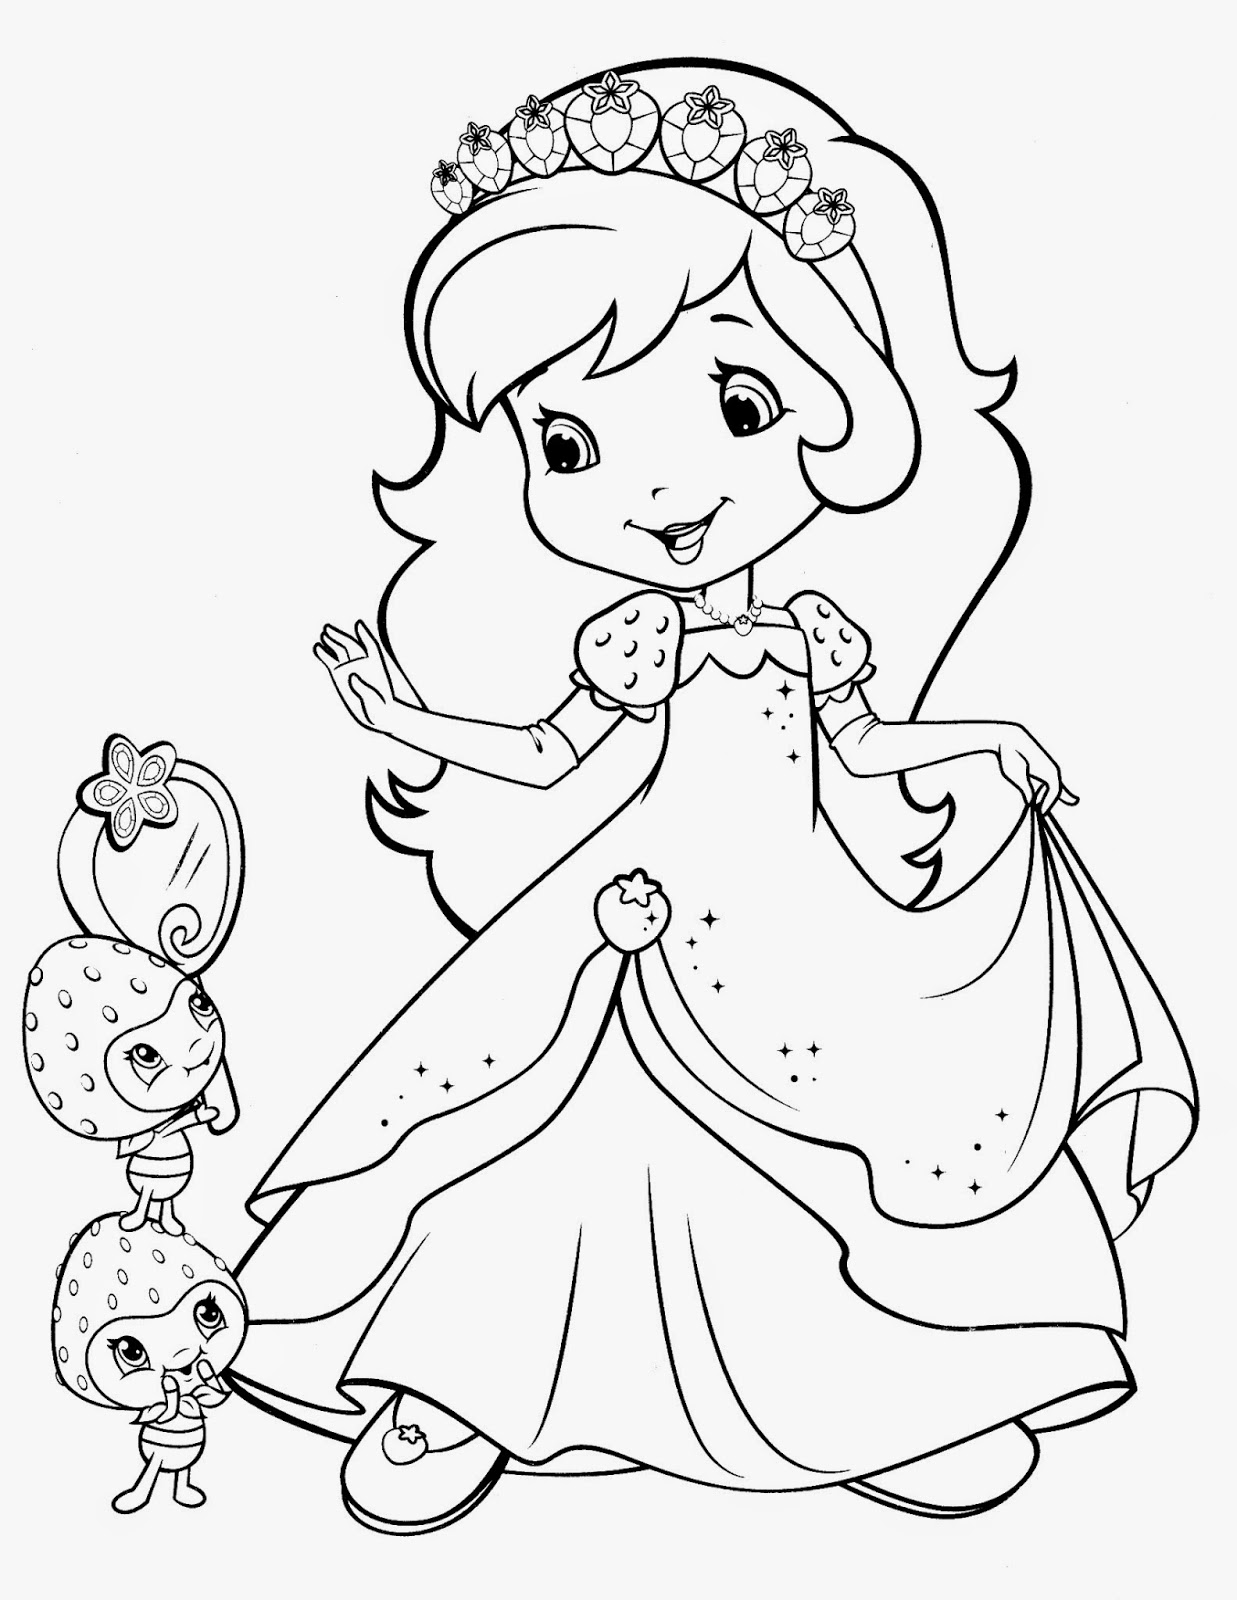 strawberry shortcake princess coloring pages coloring pages plum pudding 2020 strawberry pages shortcake princess strawberry coloring